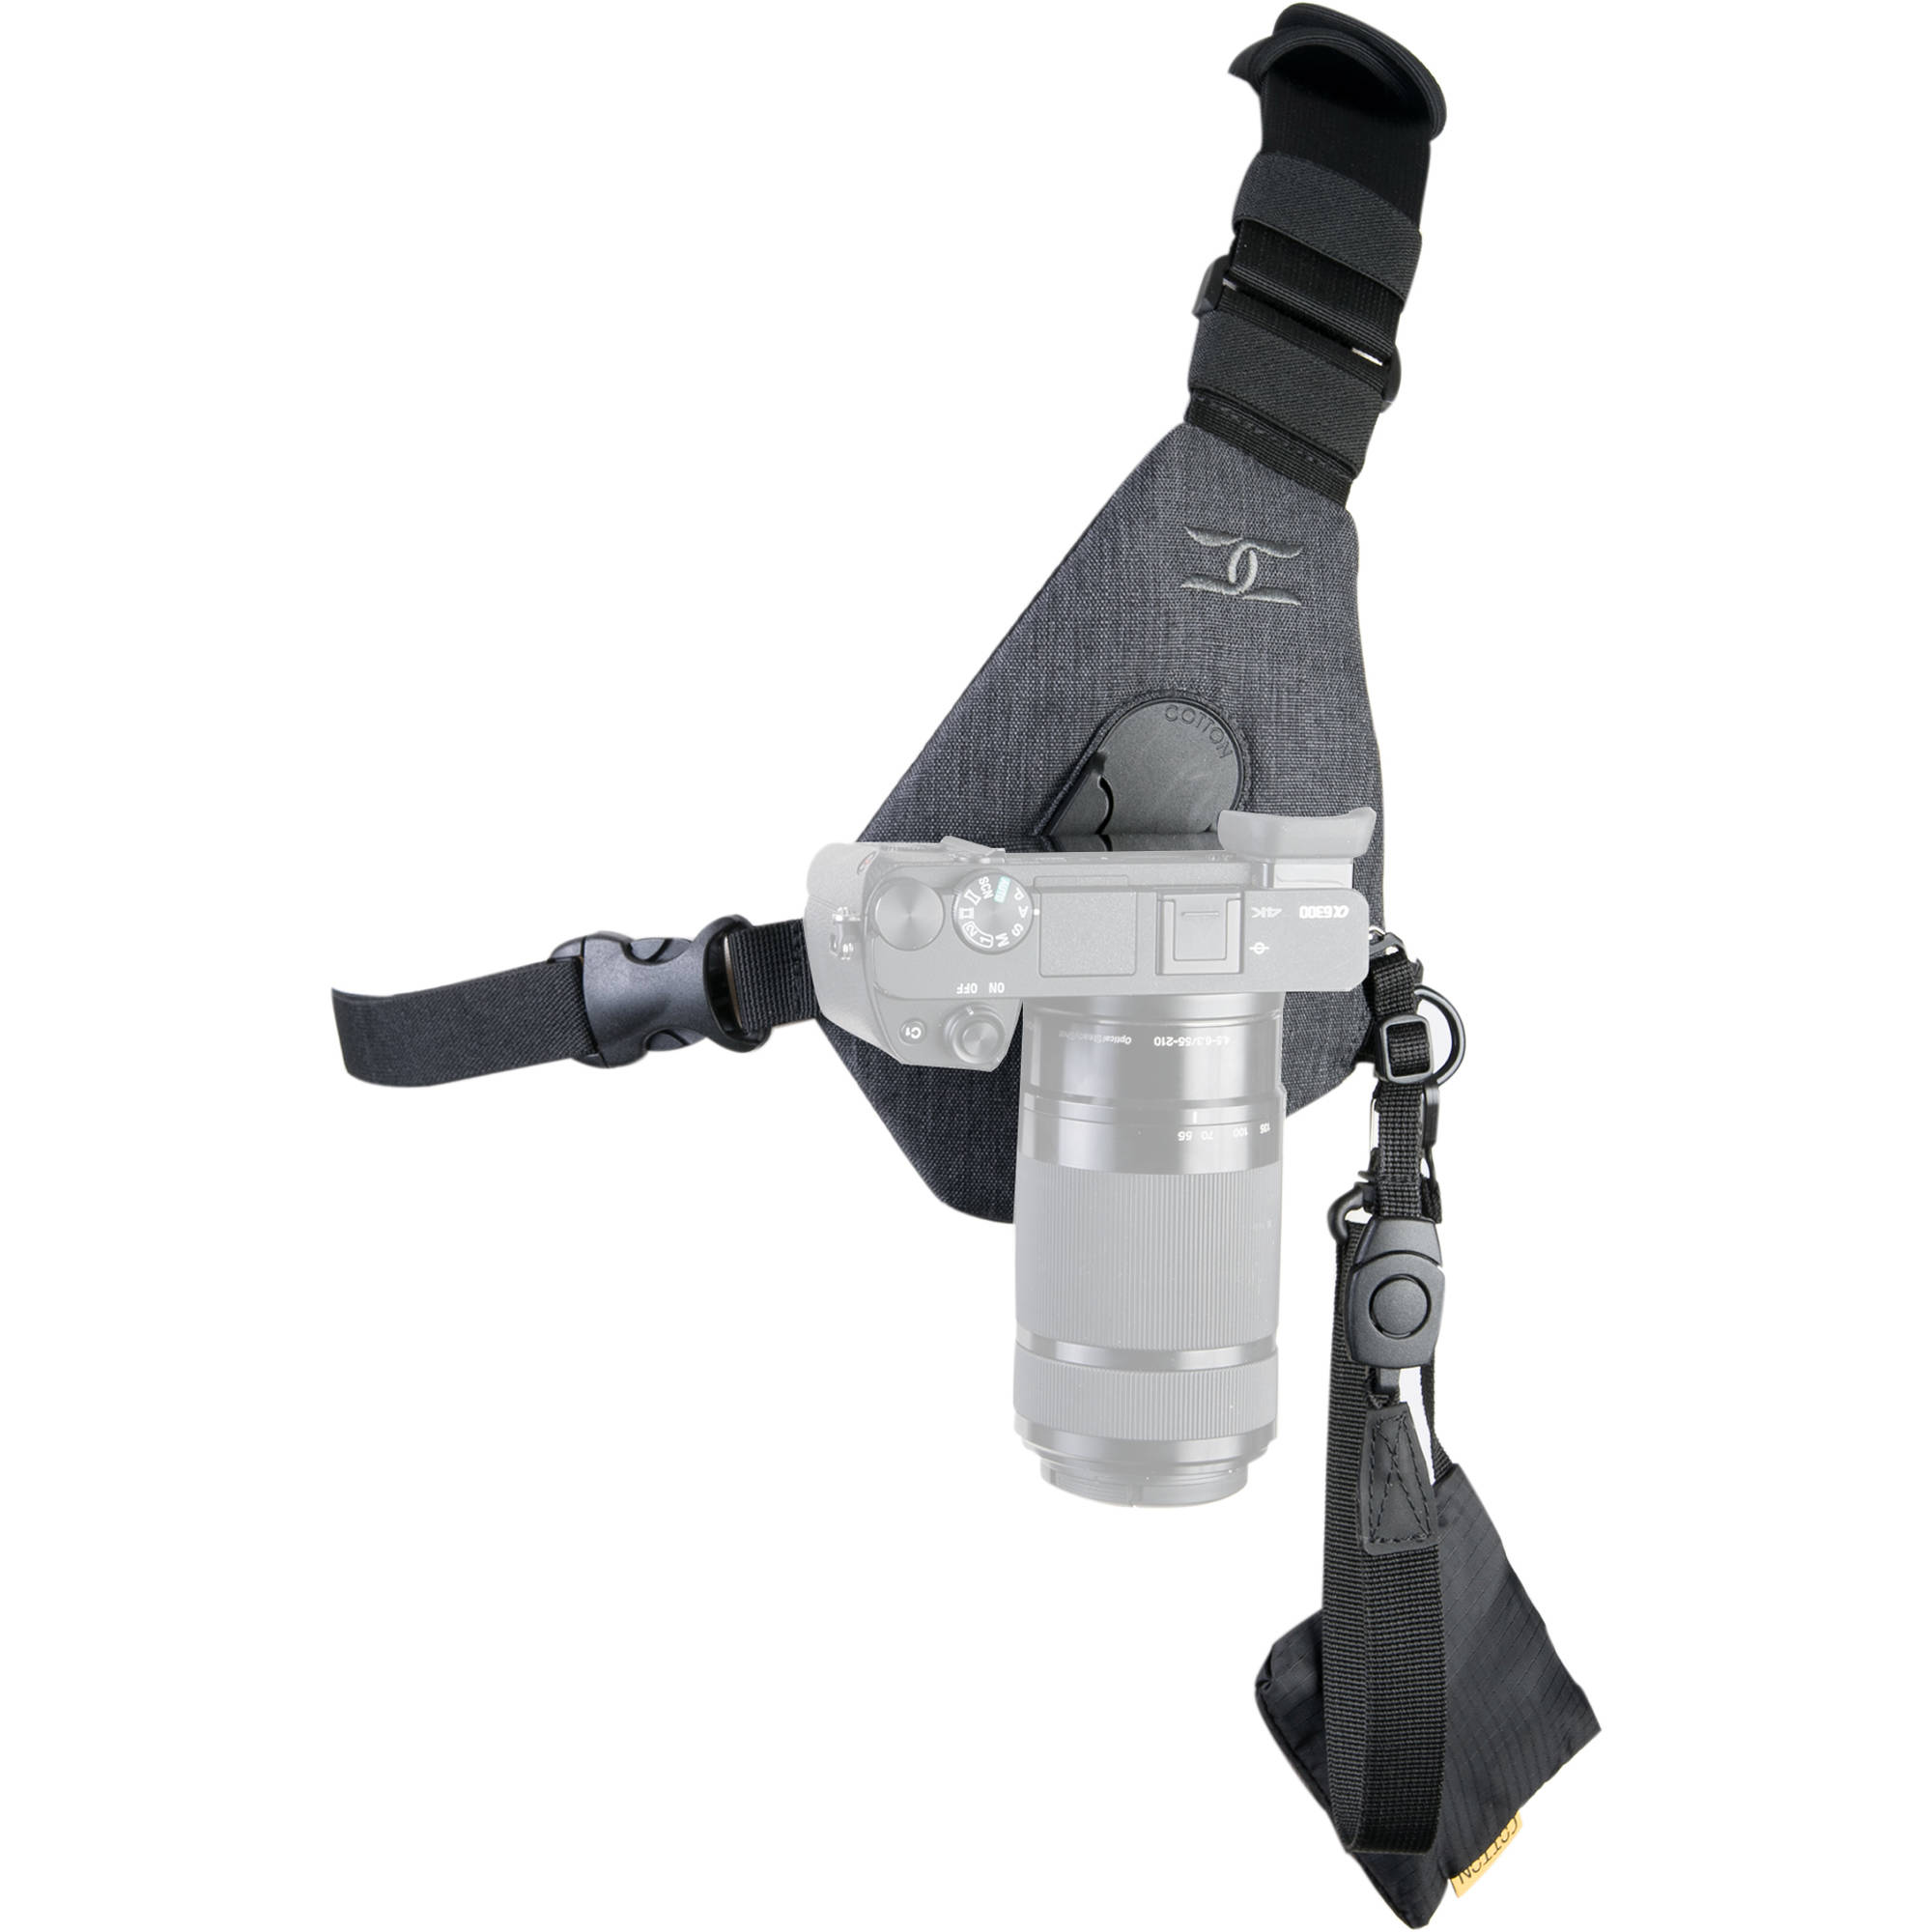 Cotton Carrier Skout Camera Sling Style Harness (Gray) 410GREY